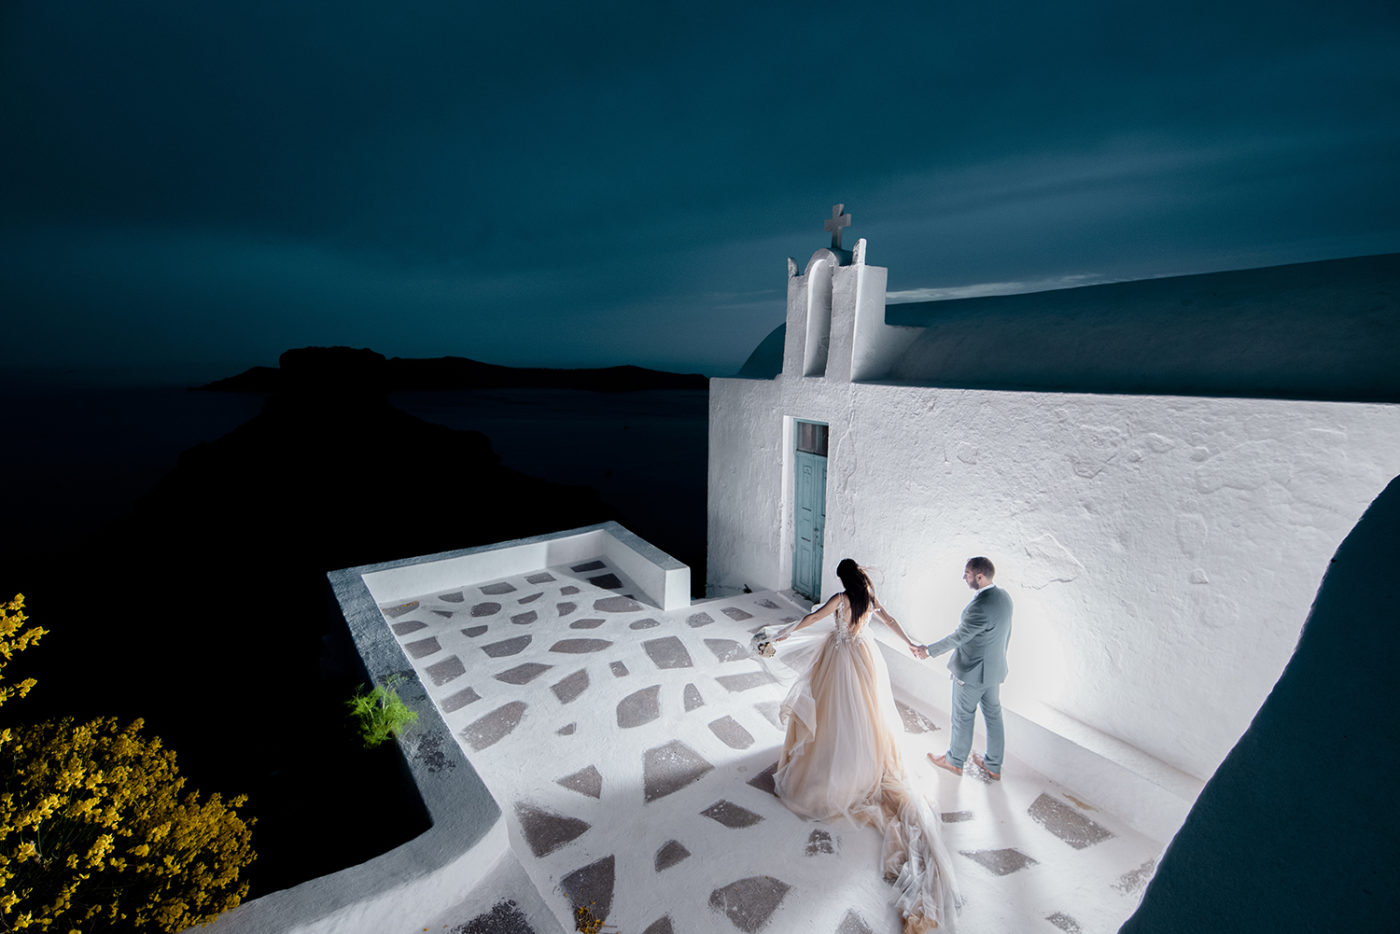 Yiannis-Sissy-Santorini-Wedding-Photography-by-Kirill-Samarits (10)